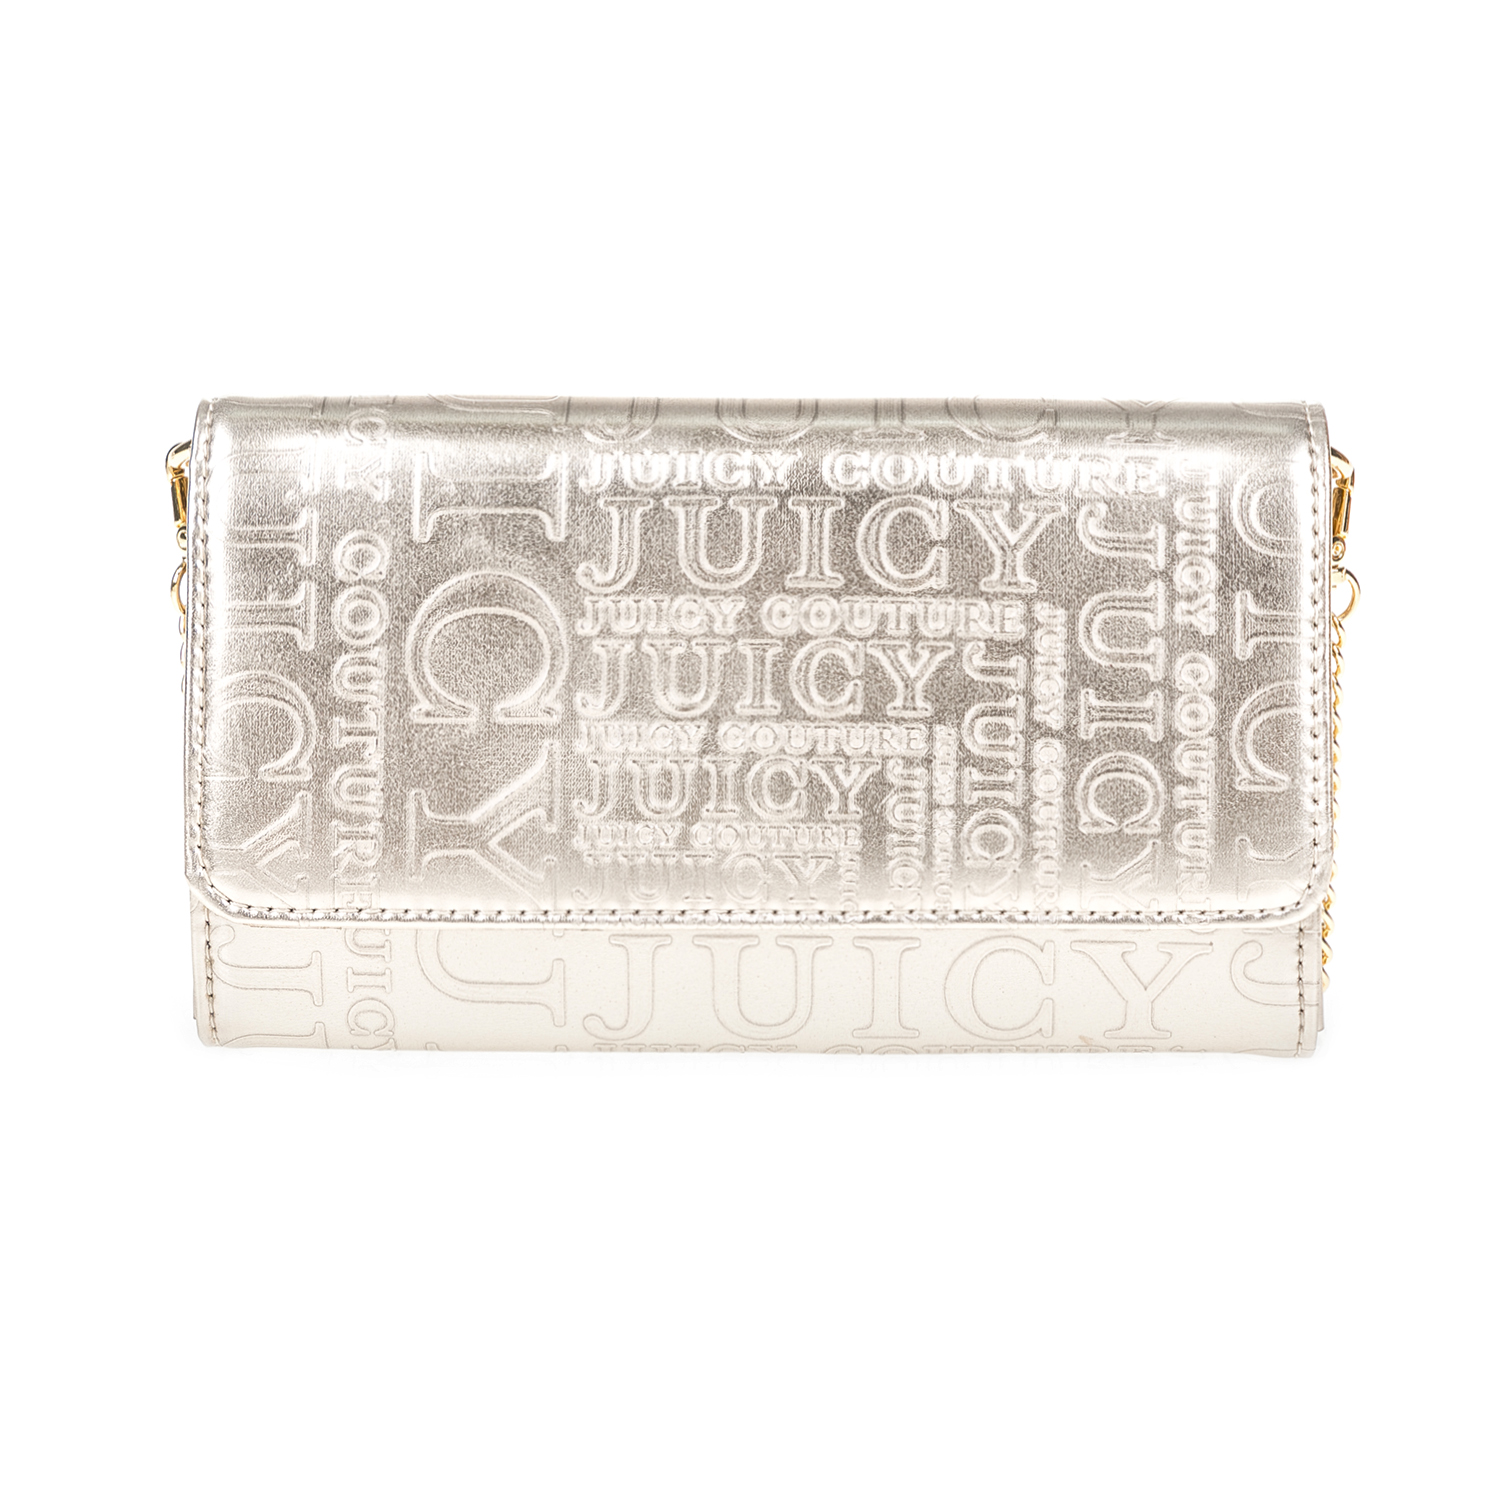 JUICY COUTURE – Γυναικείο τσαντάκι JUICY COUTURE χρυσό